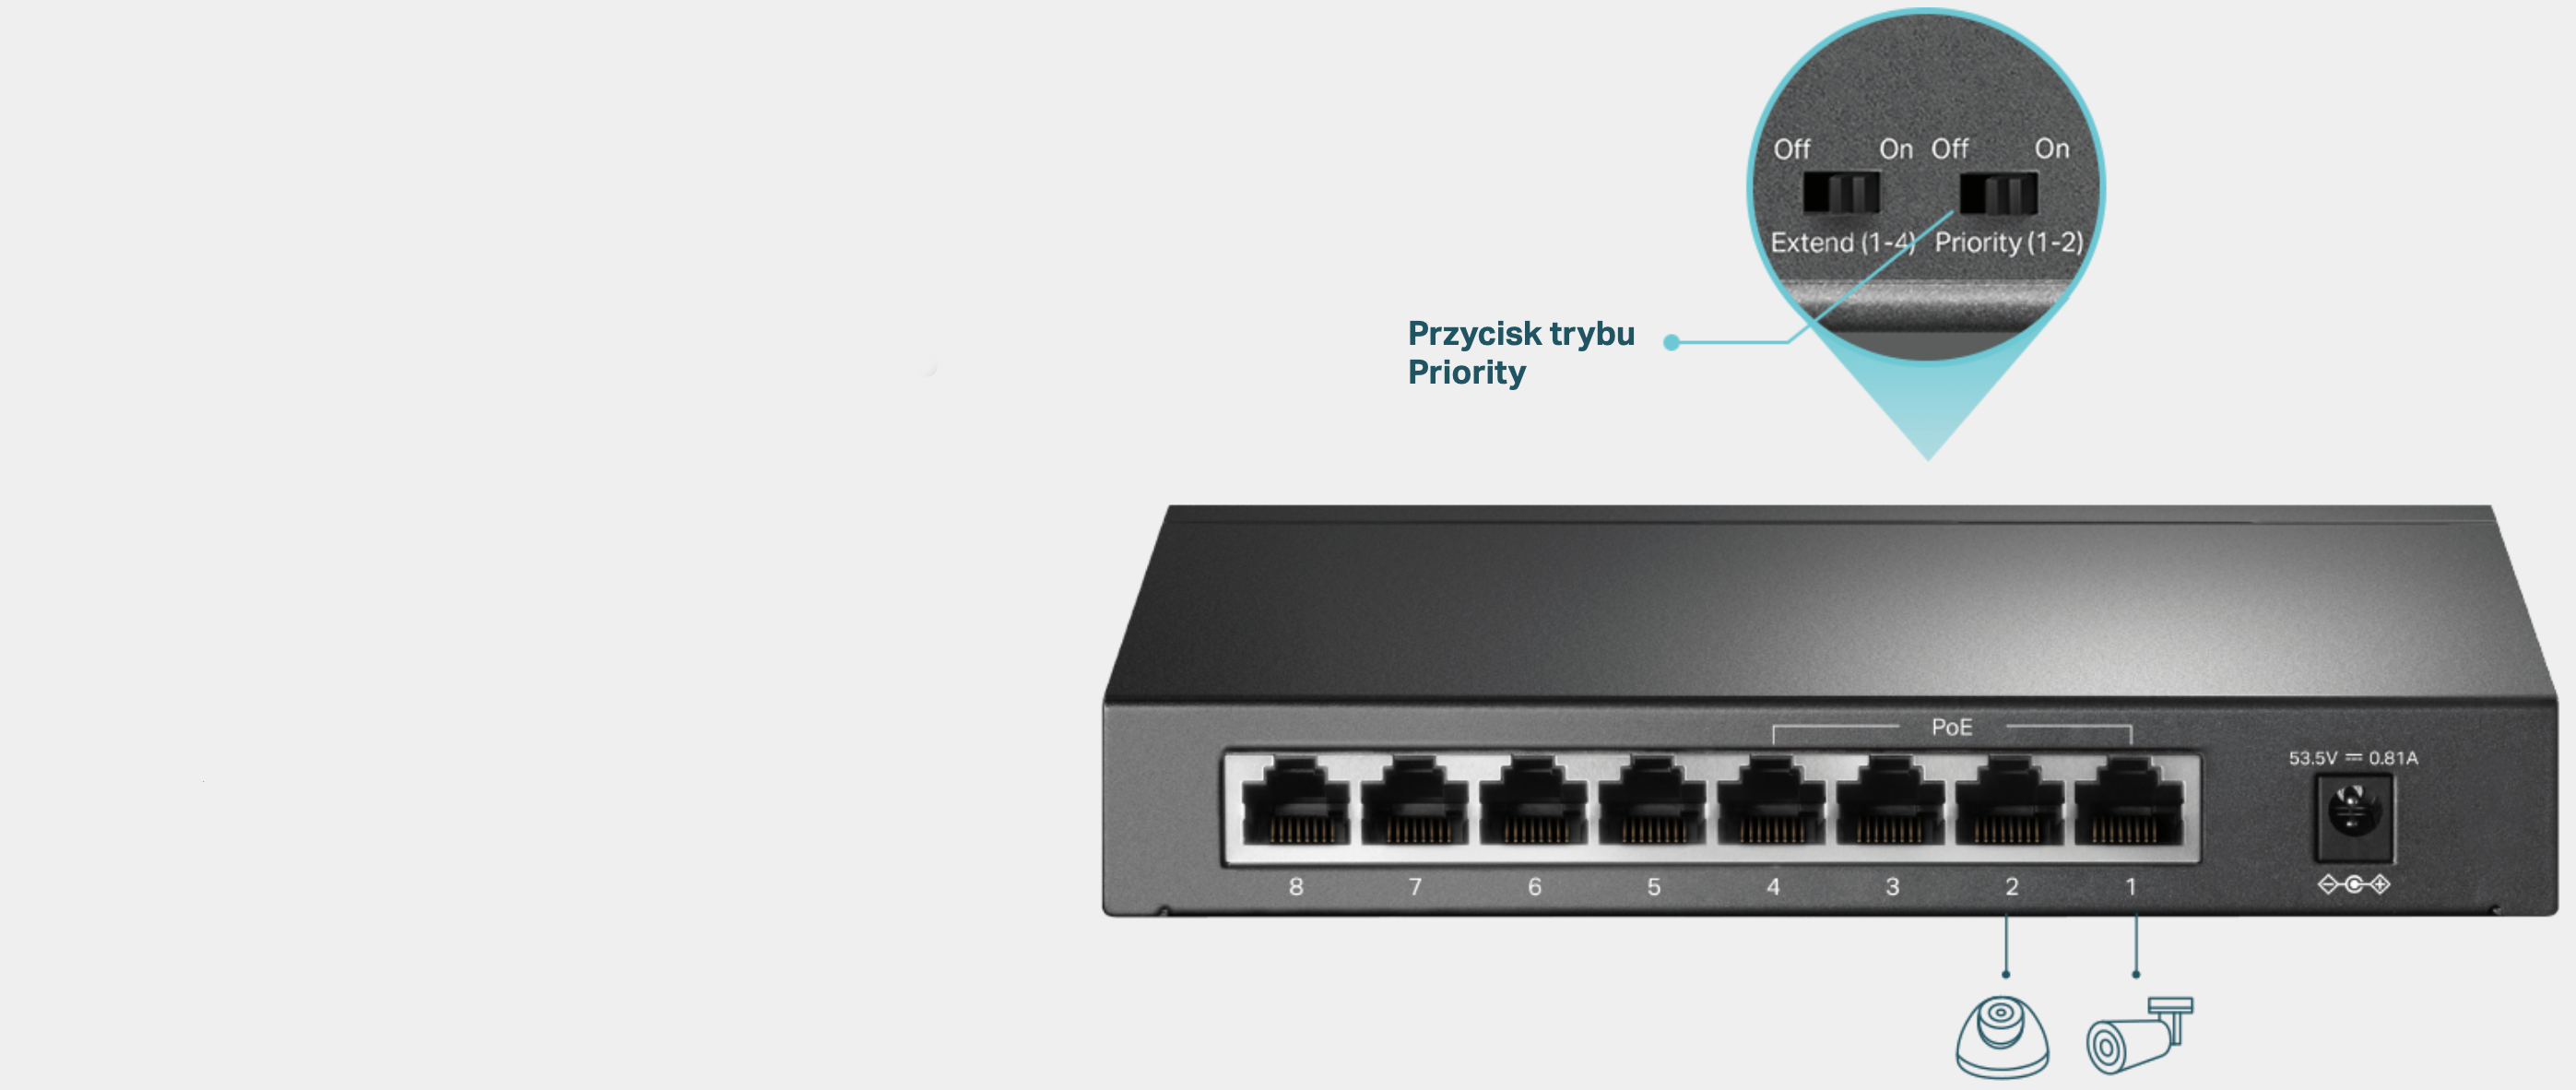 #Switch TP-LINK TL-SF1008LP